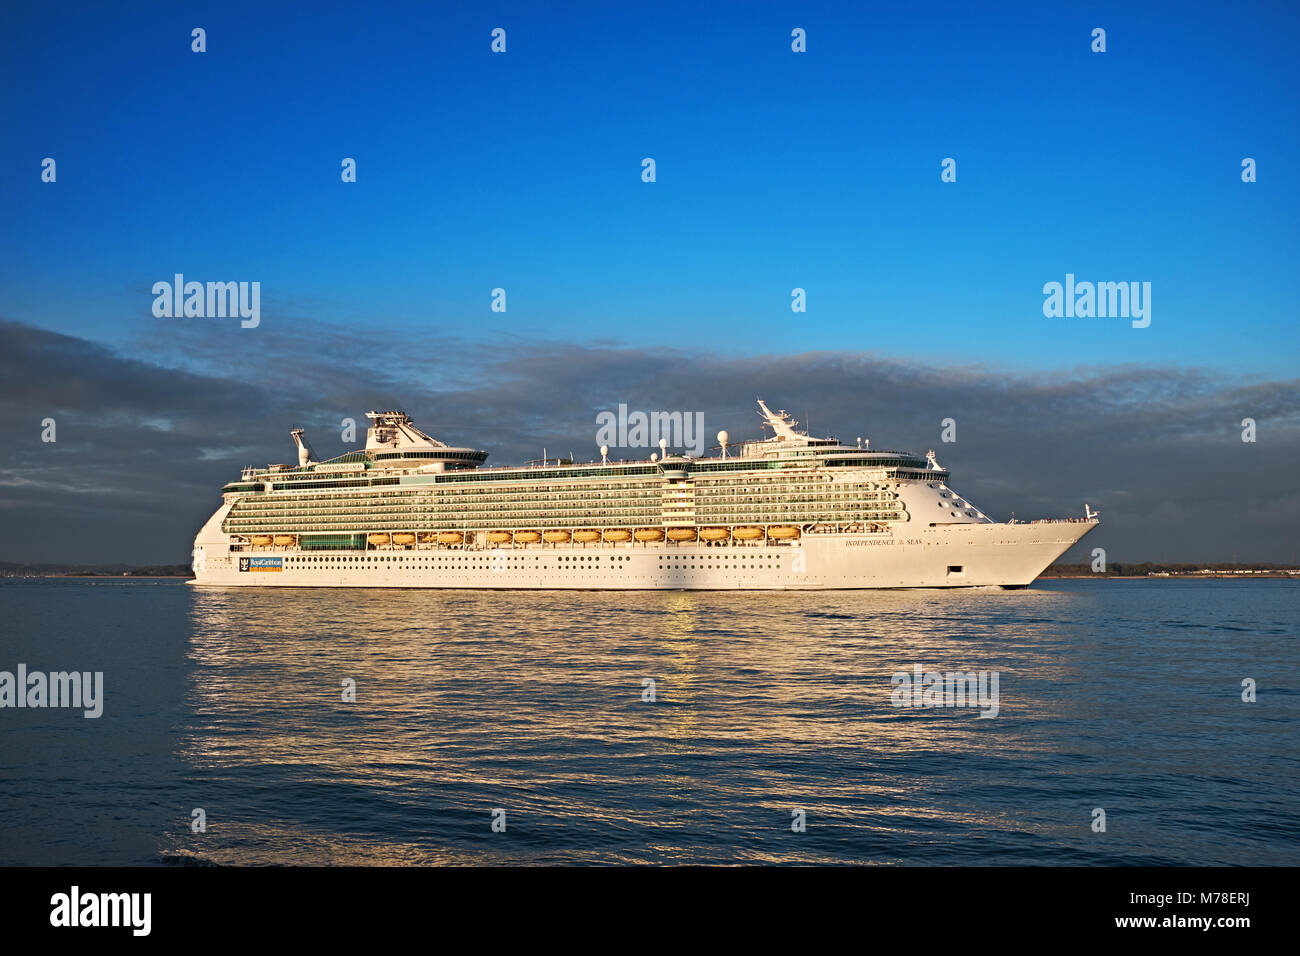 Royal Caribbean Independence of the seas leaves dock to start another voyage - Stock Image